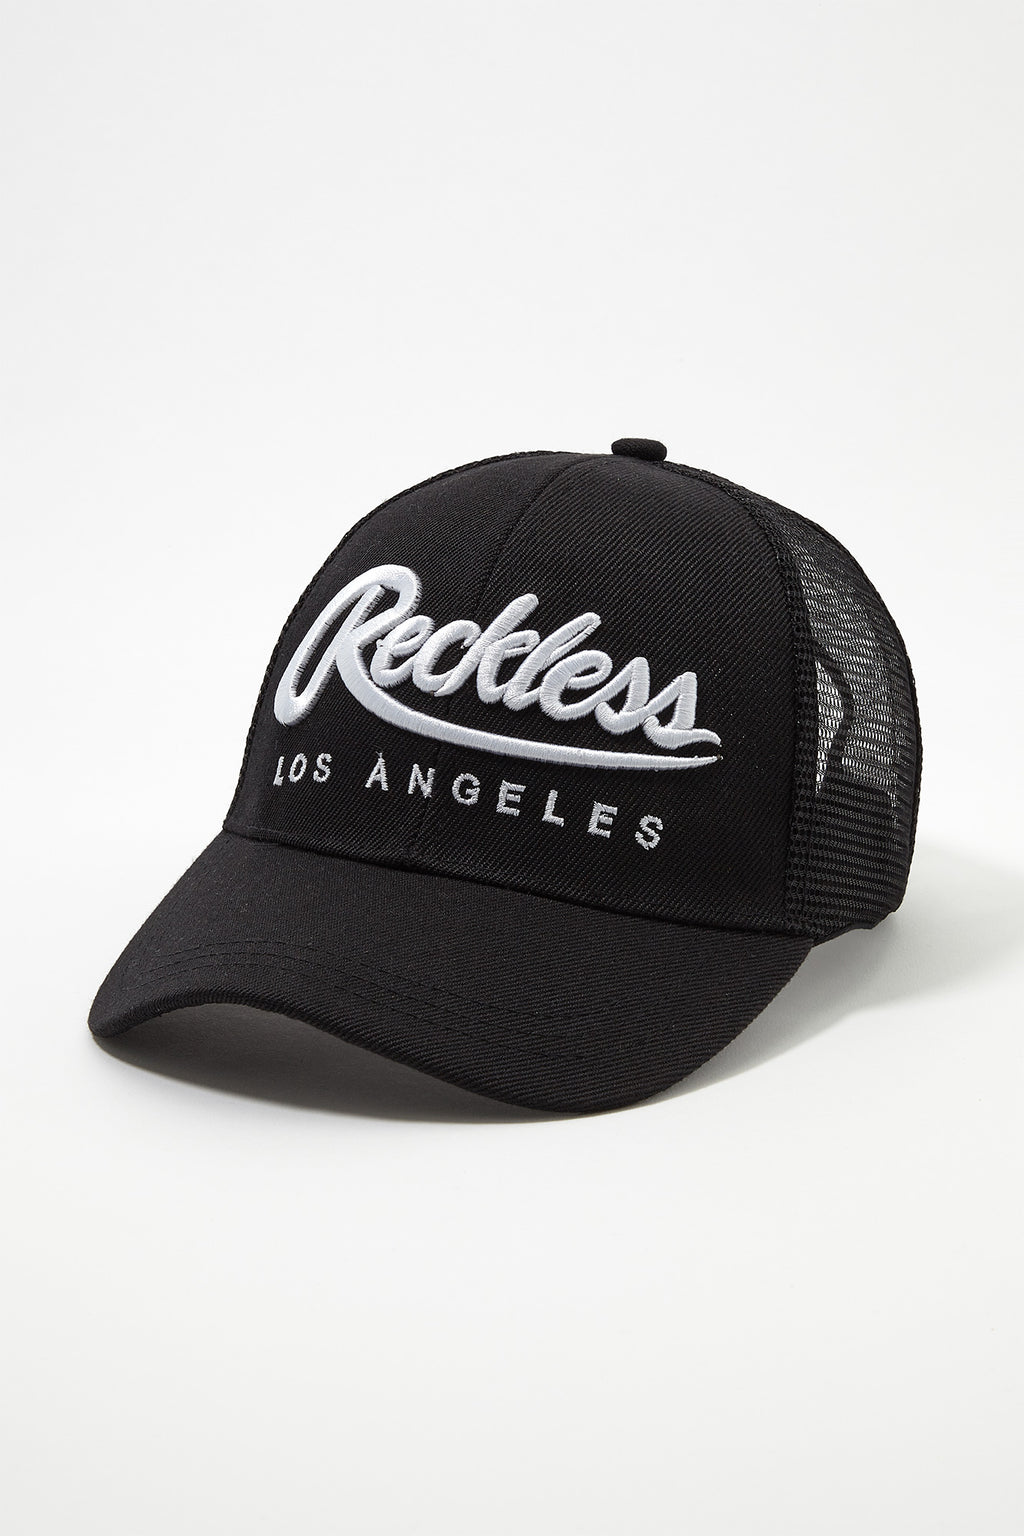 Young & Reckless Mens Snapback Trucker Hat